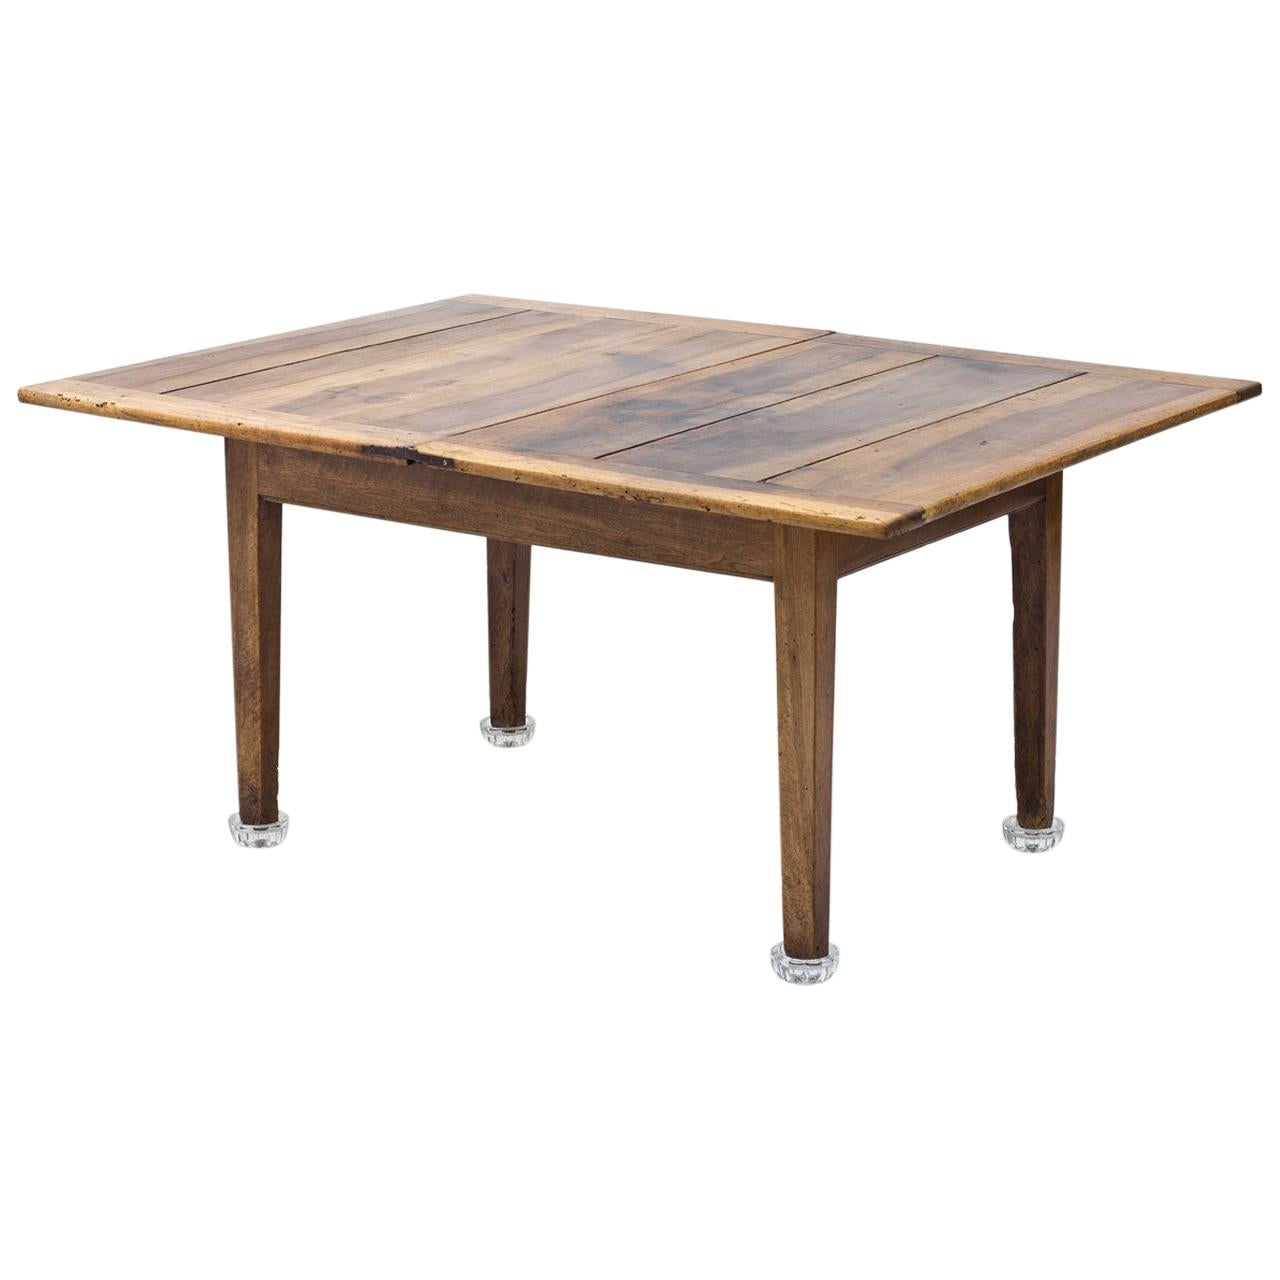 Rustic Country French Provincial Table